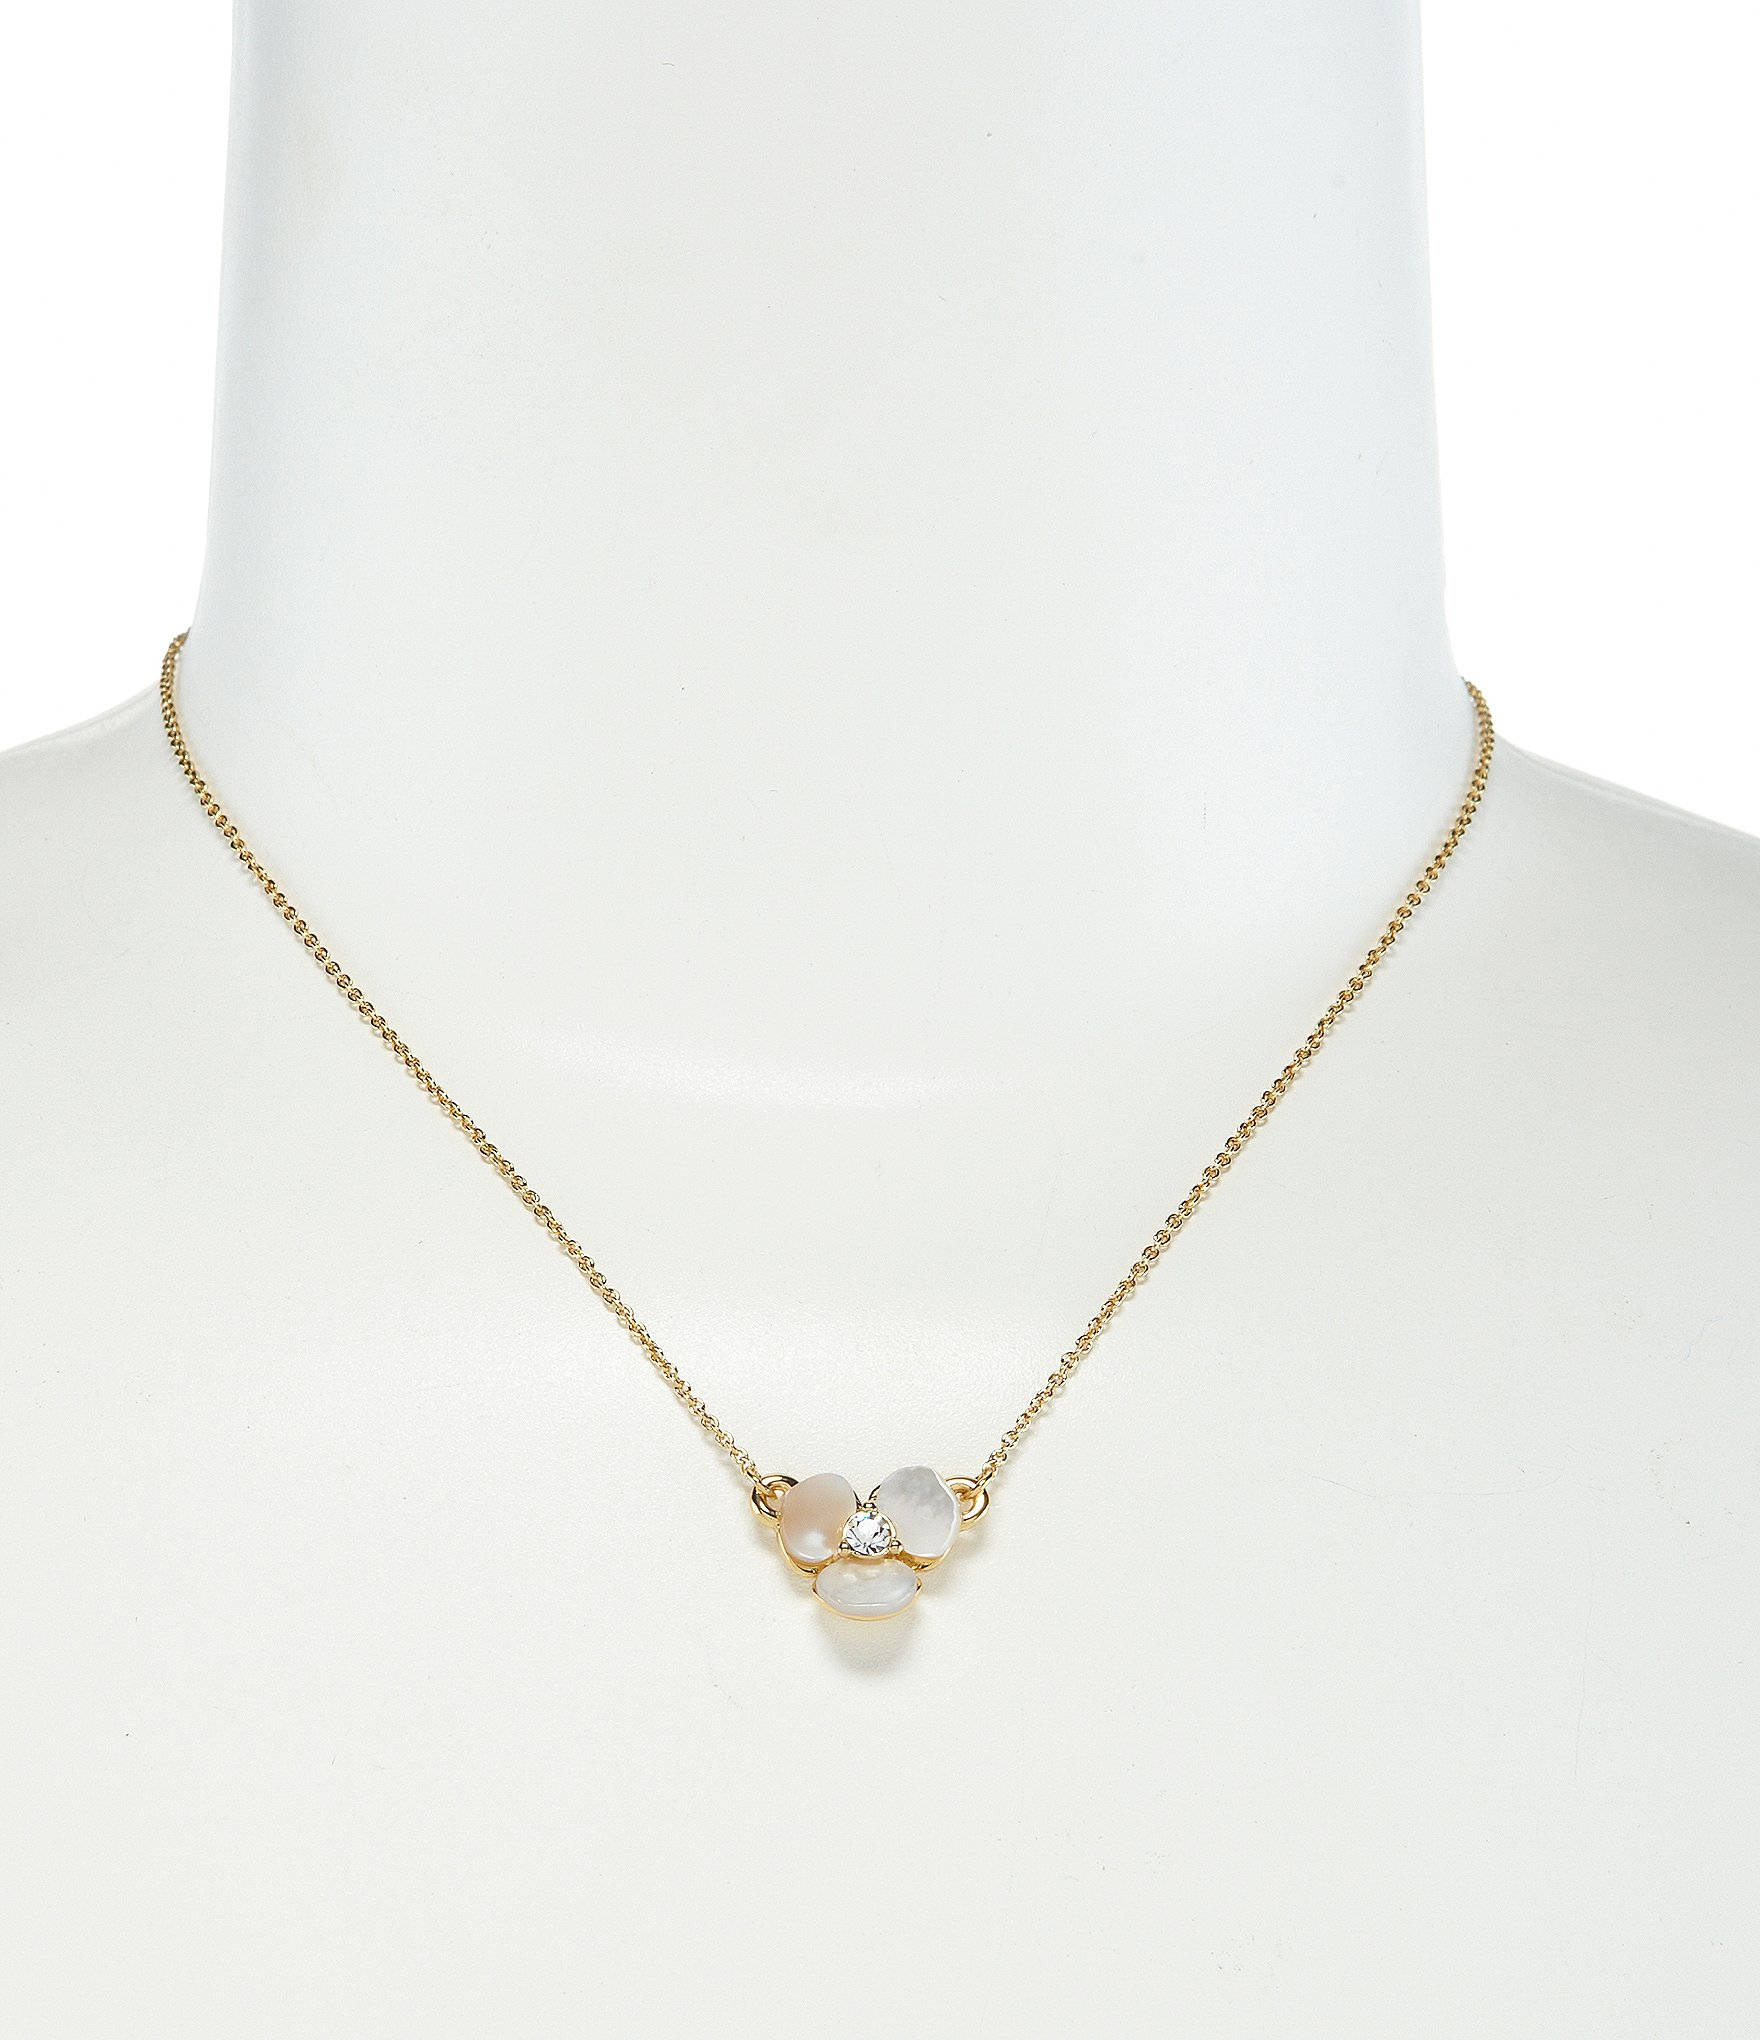 kate spade new york disco pansy mini pendant necklace in